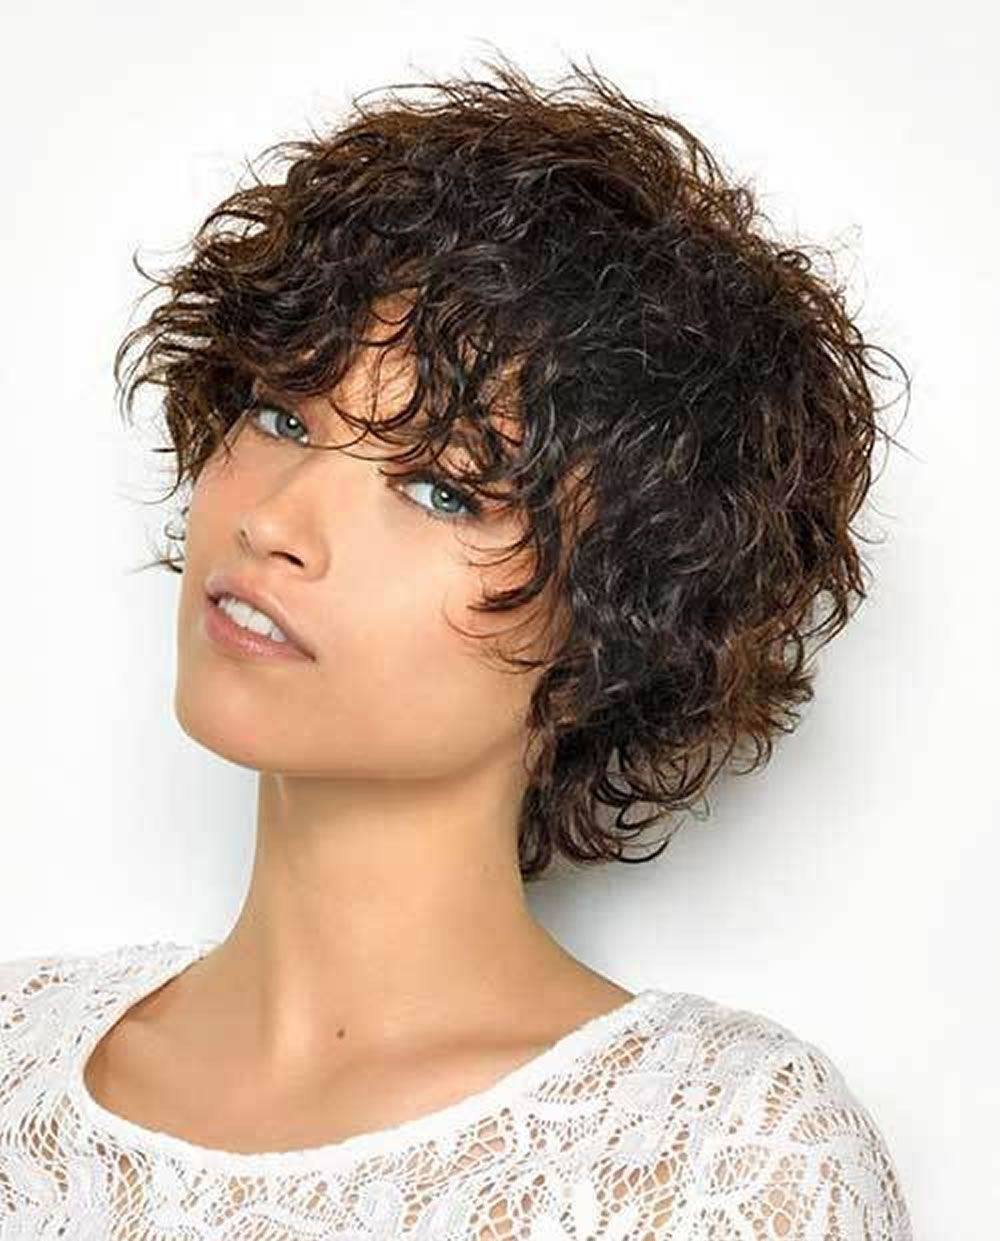 9 Cool Short Hairstyles For Curly Hair For Women With Diamond Face 2019 Curly Hair 2019 Curly Hair Styles Short Hair Styles Short Curly Hairstyles For Women